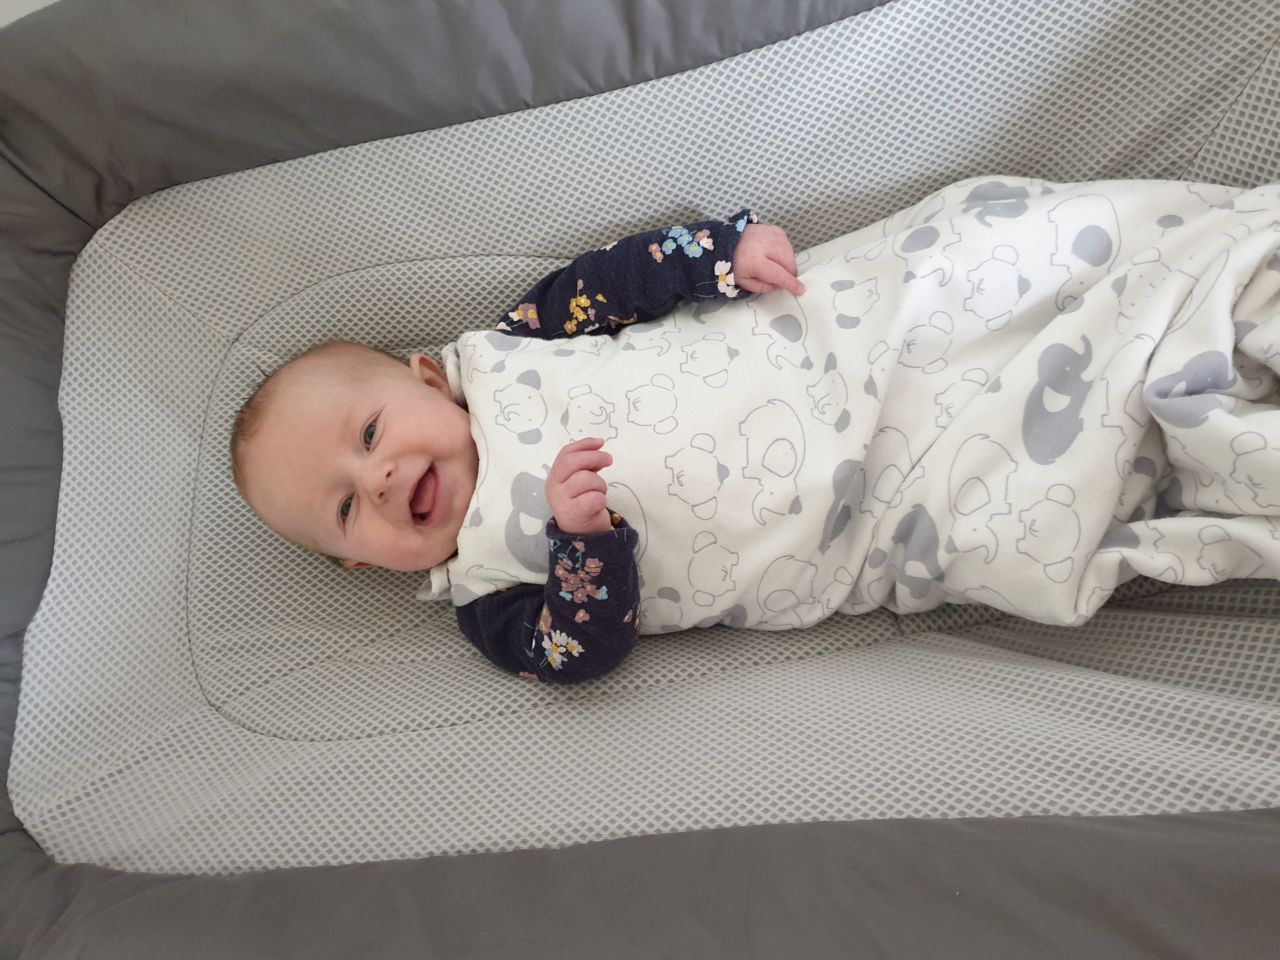 Things mums say that are true - Emmy 3.5 months old